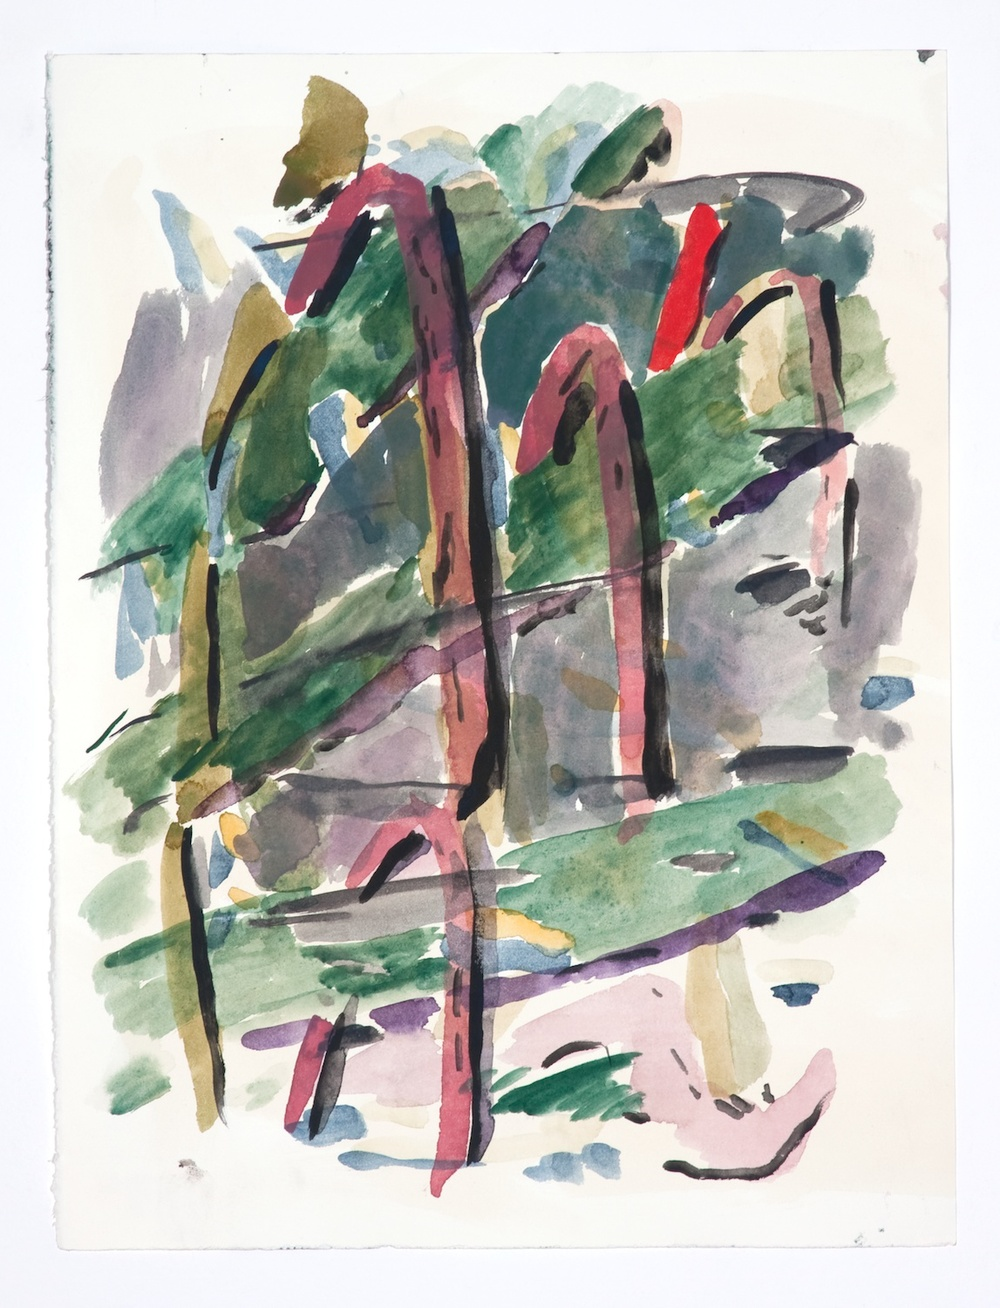 Jon Pestoni  Untitled  2009 Gouache on paper 15h x 11 ¼w in JP086